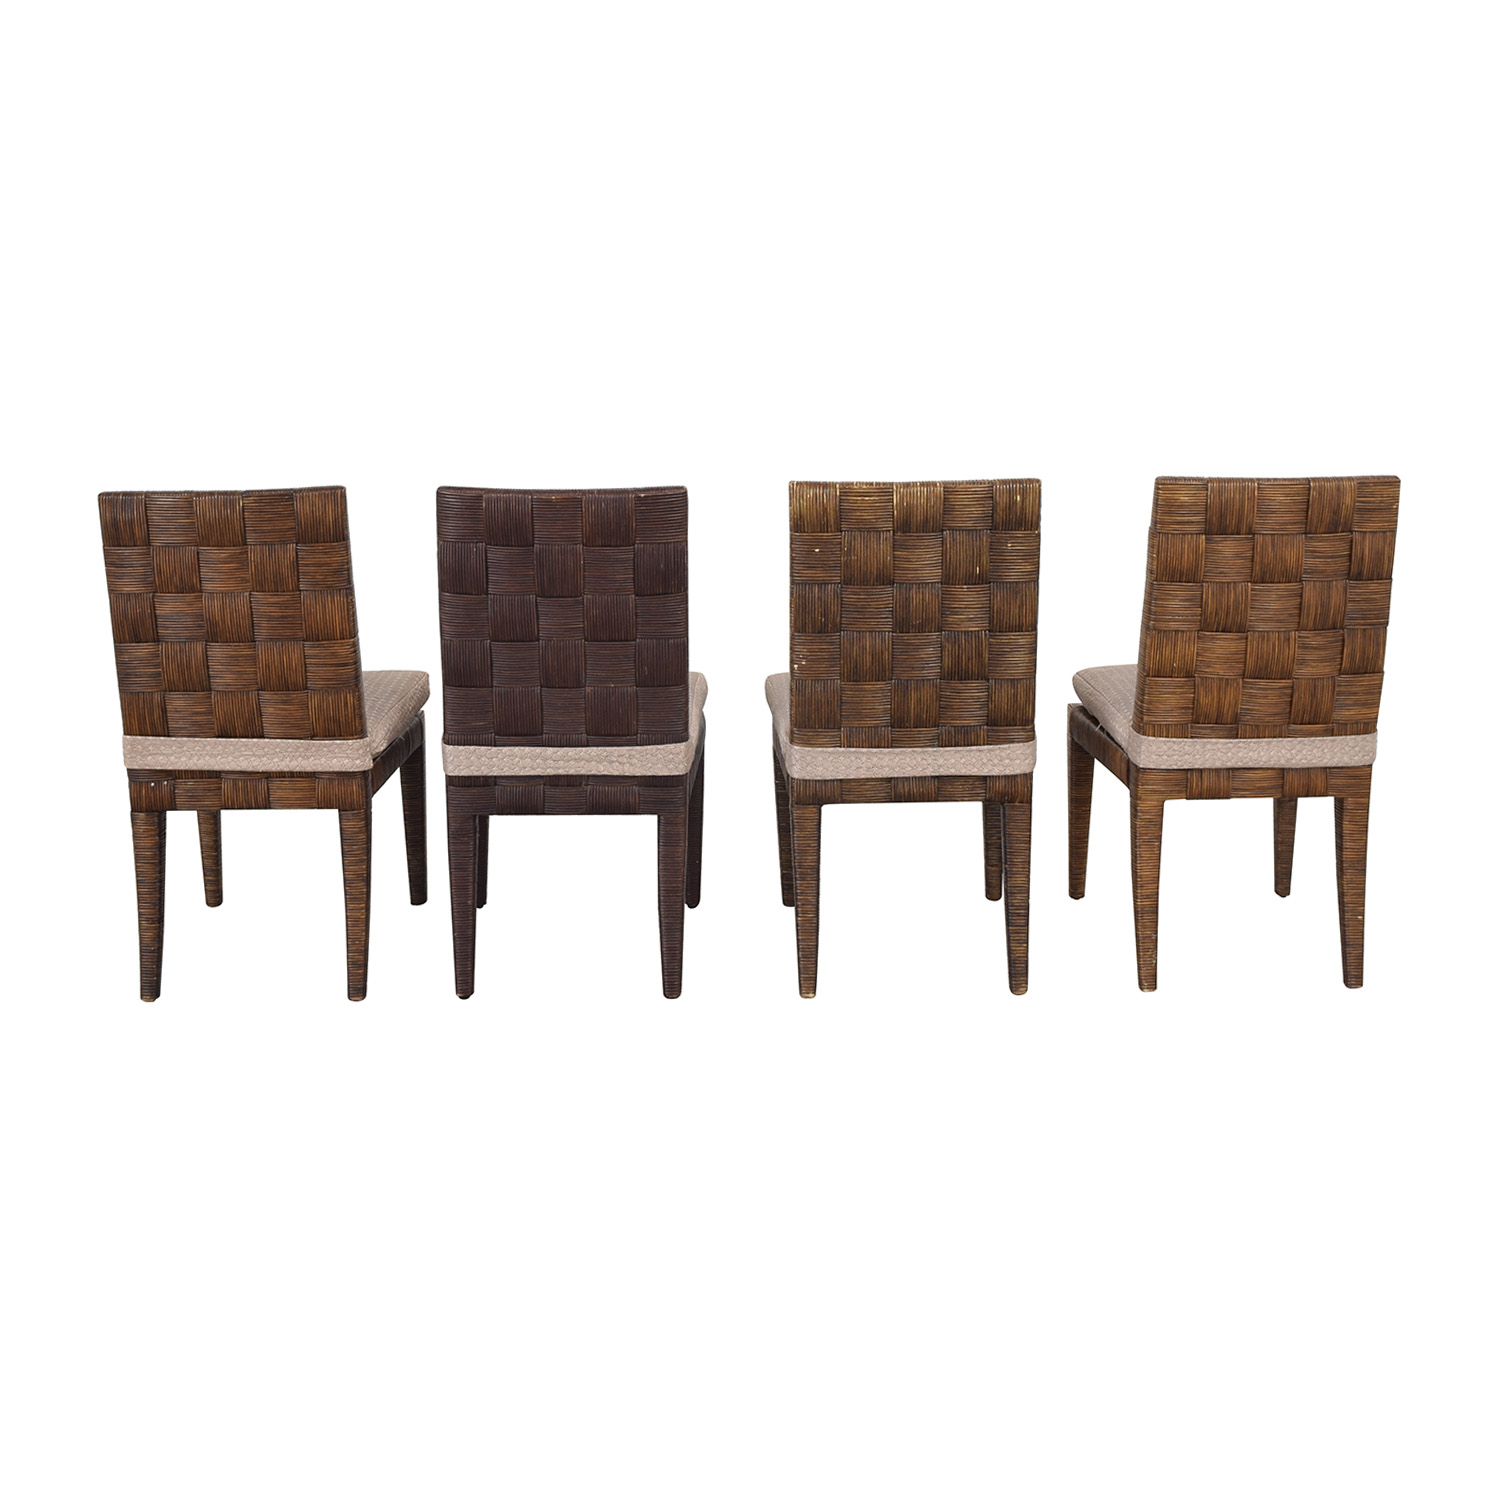 Donghia Donghia John Hutton Block Island Side Dining Chairs second hand